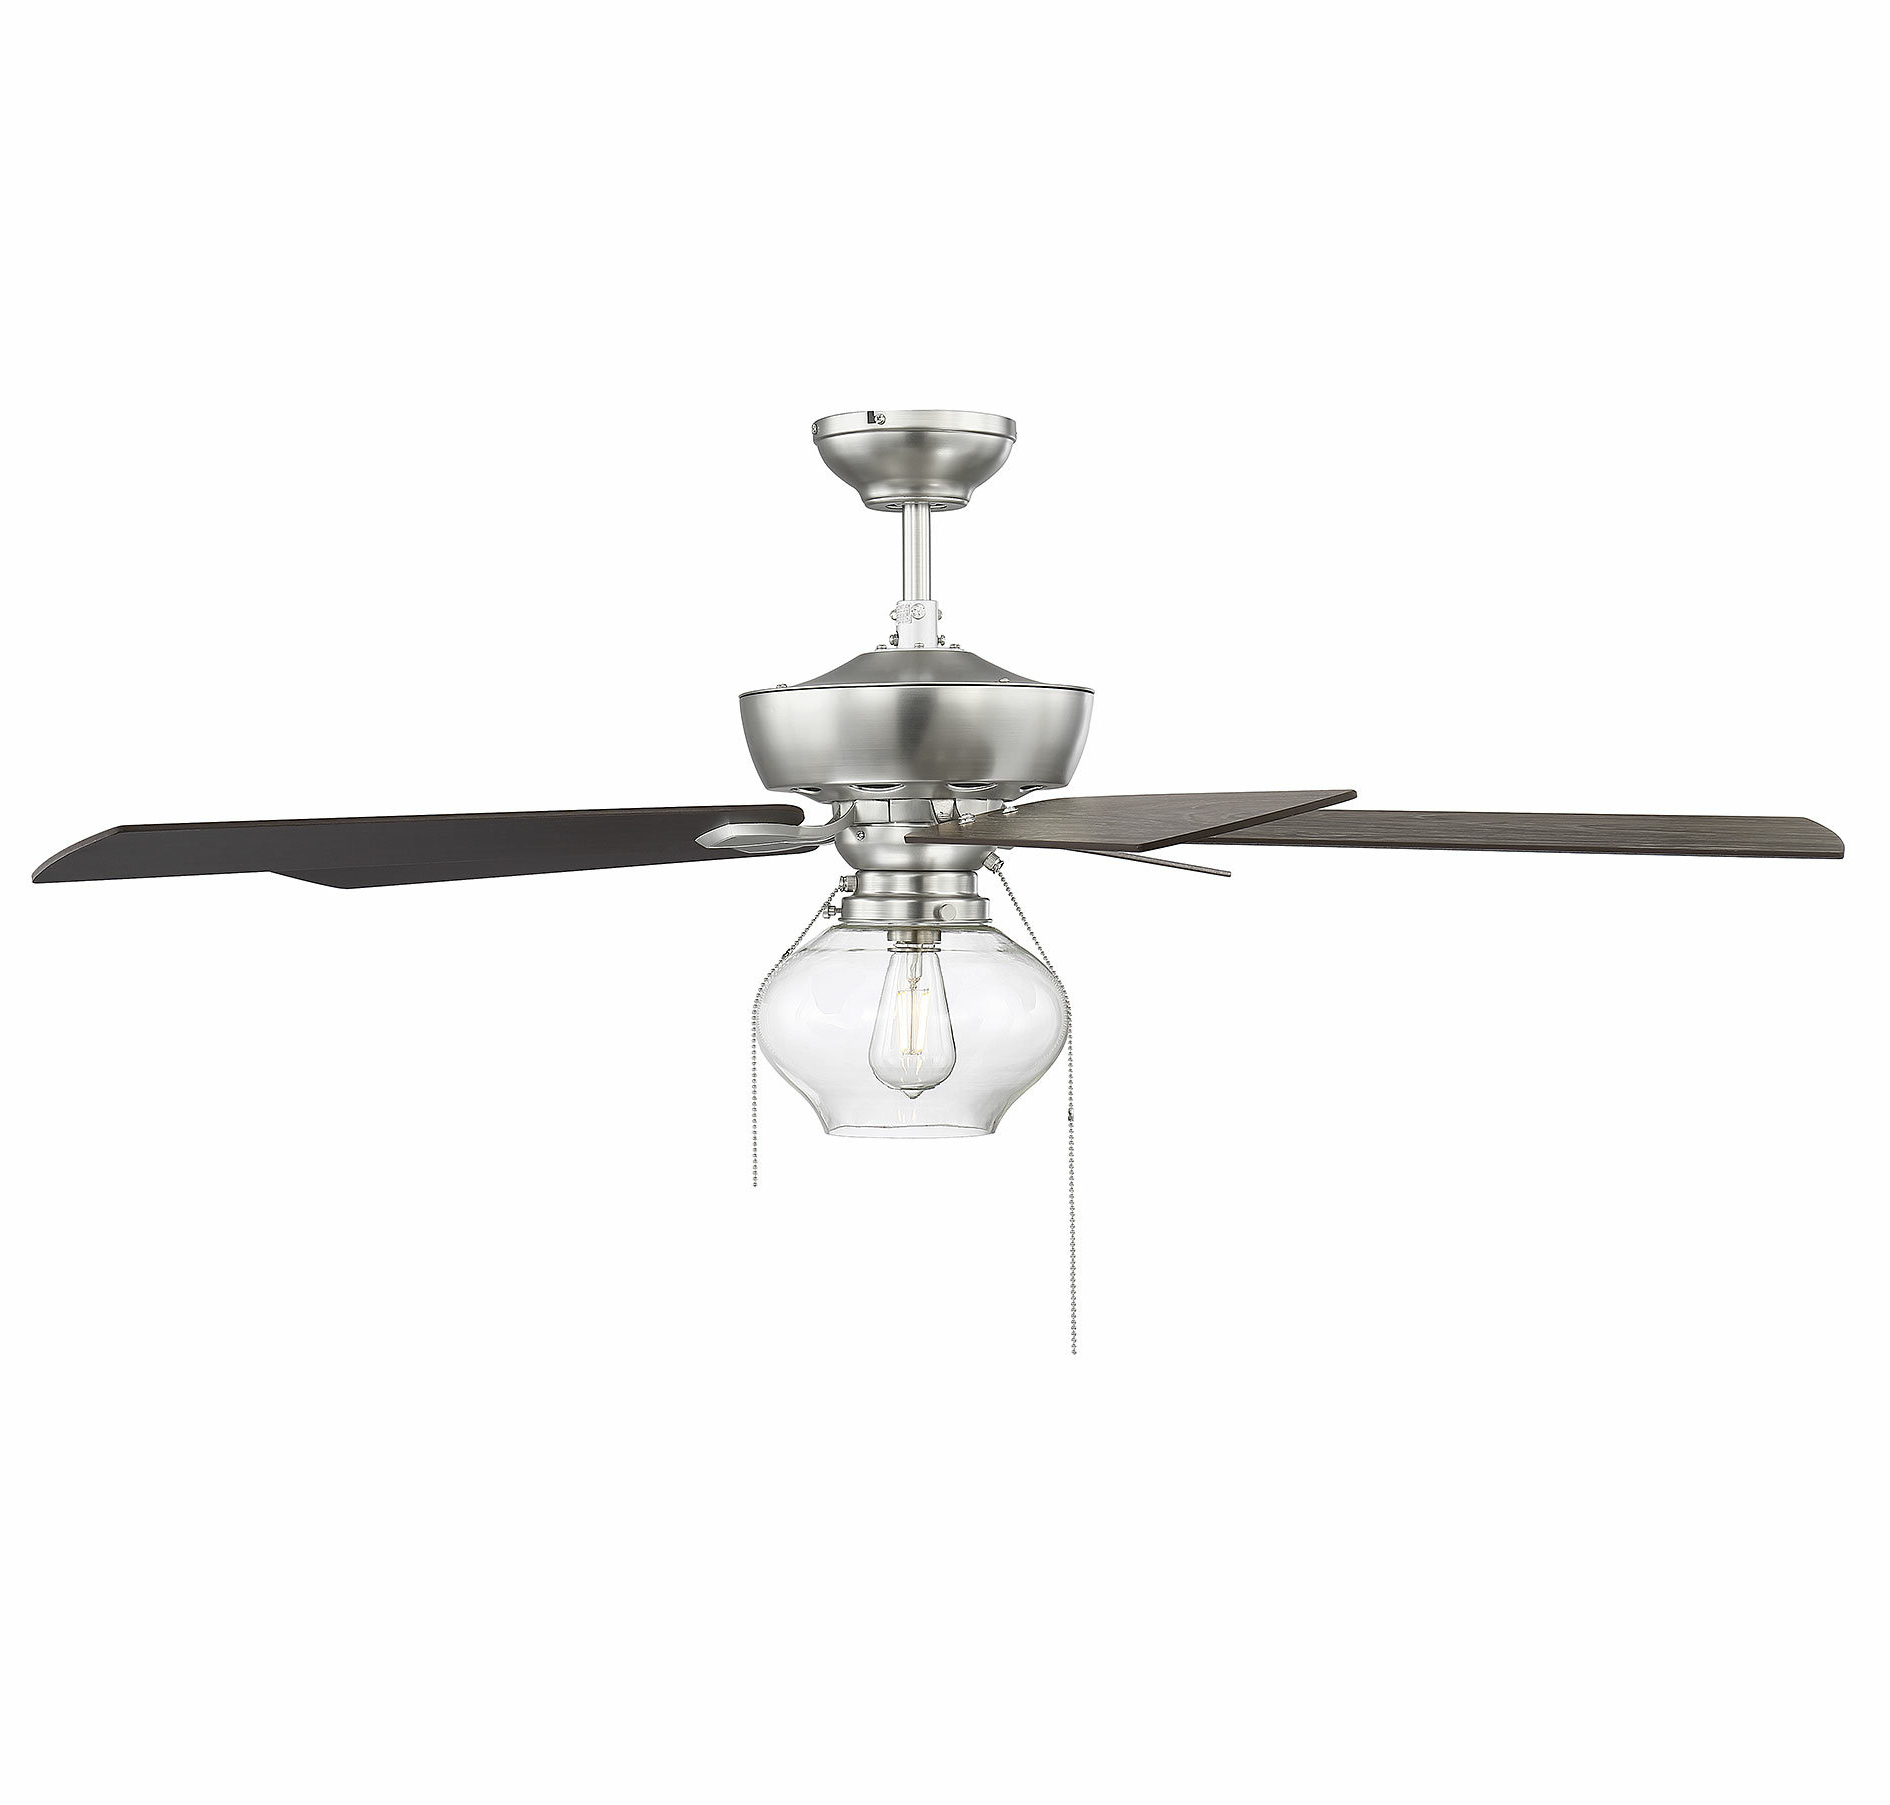 "Famous Glenpool 5 Blade Ceiling Fans Pertaining To 52"" Lundy 5 Blade Ceiling Fan, Light Kit Included (View 18 of 20)"